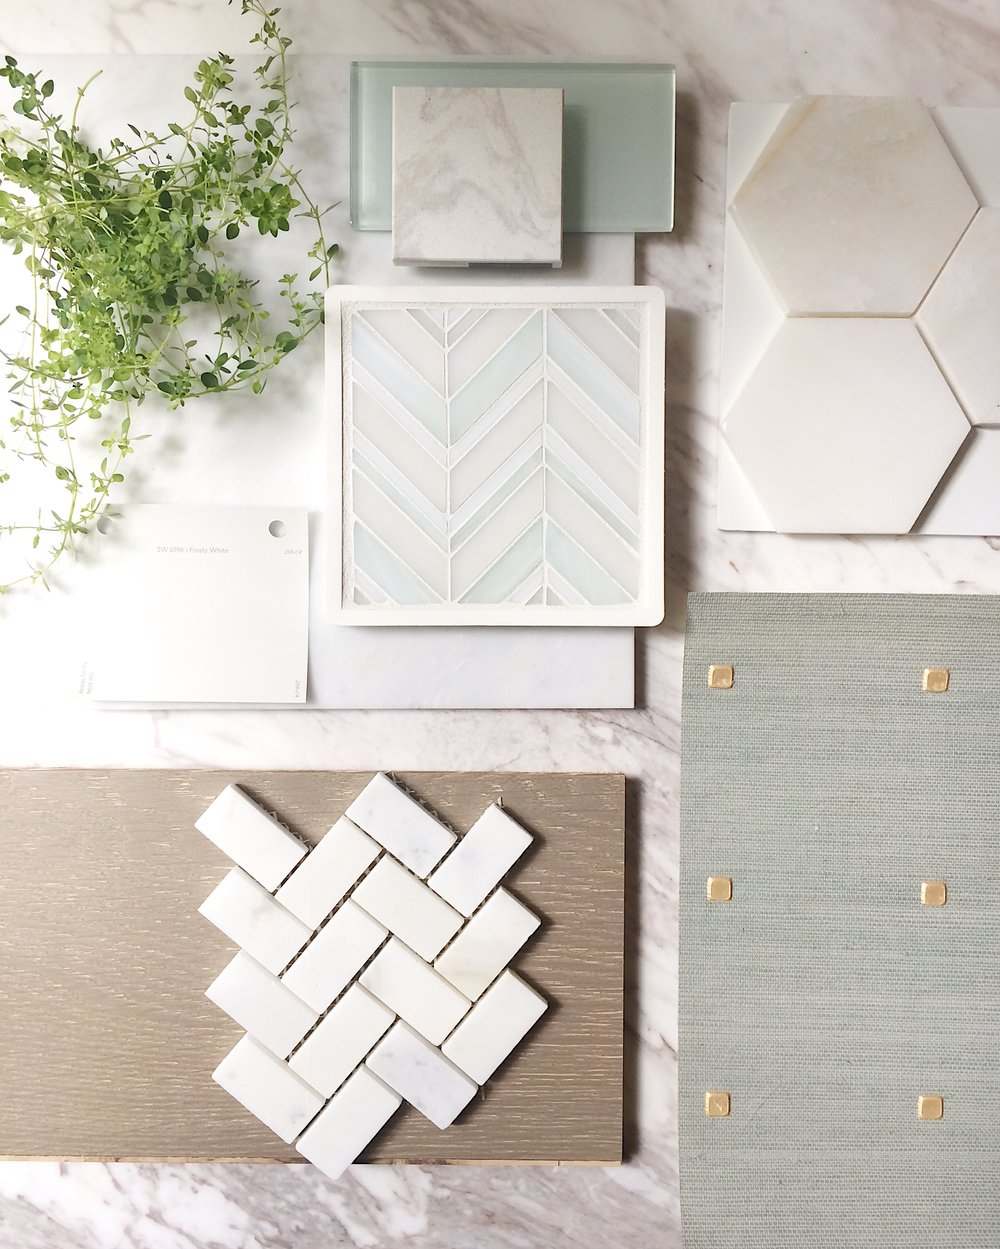 This scheme was sparked by the beautiful glass chevron-patterned tile we selected as a focal point for a master bath.